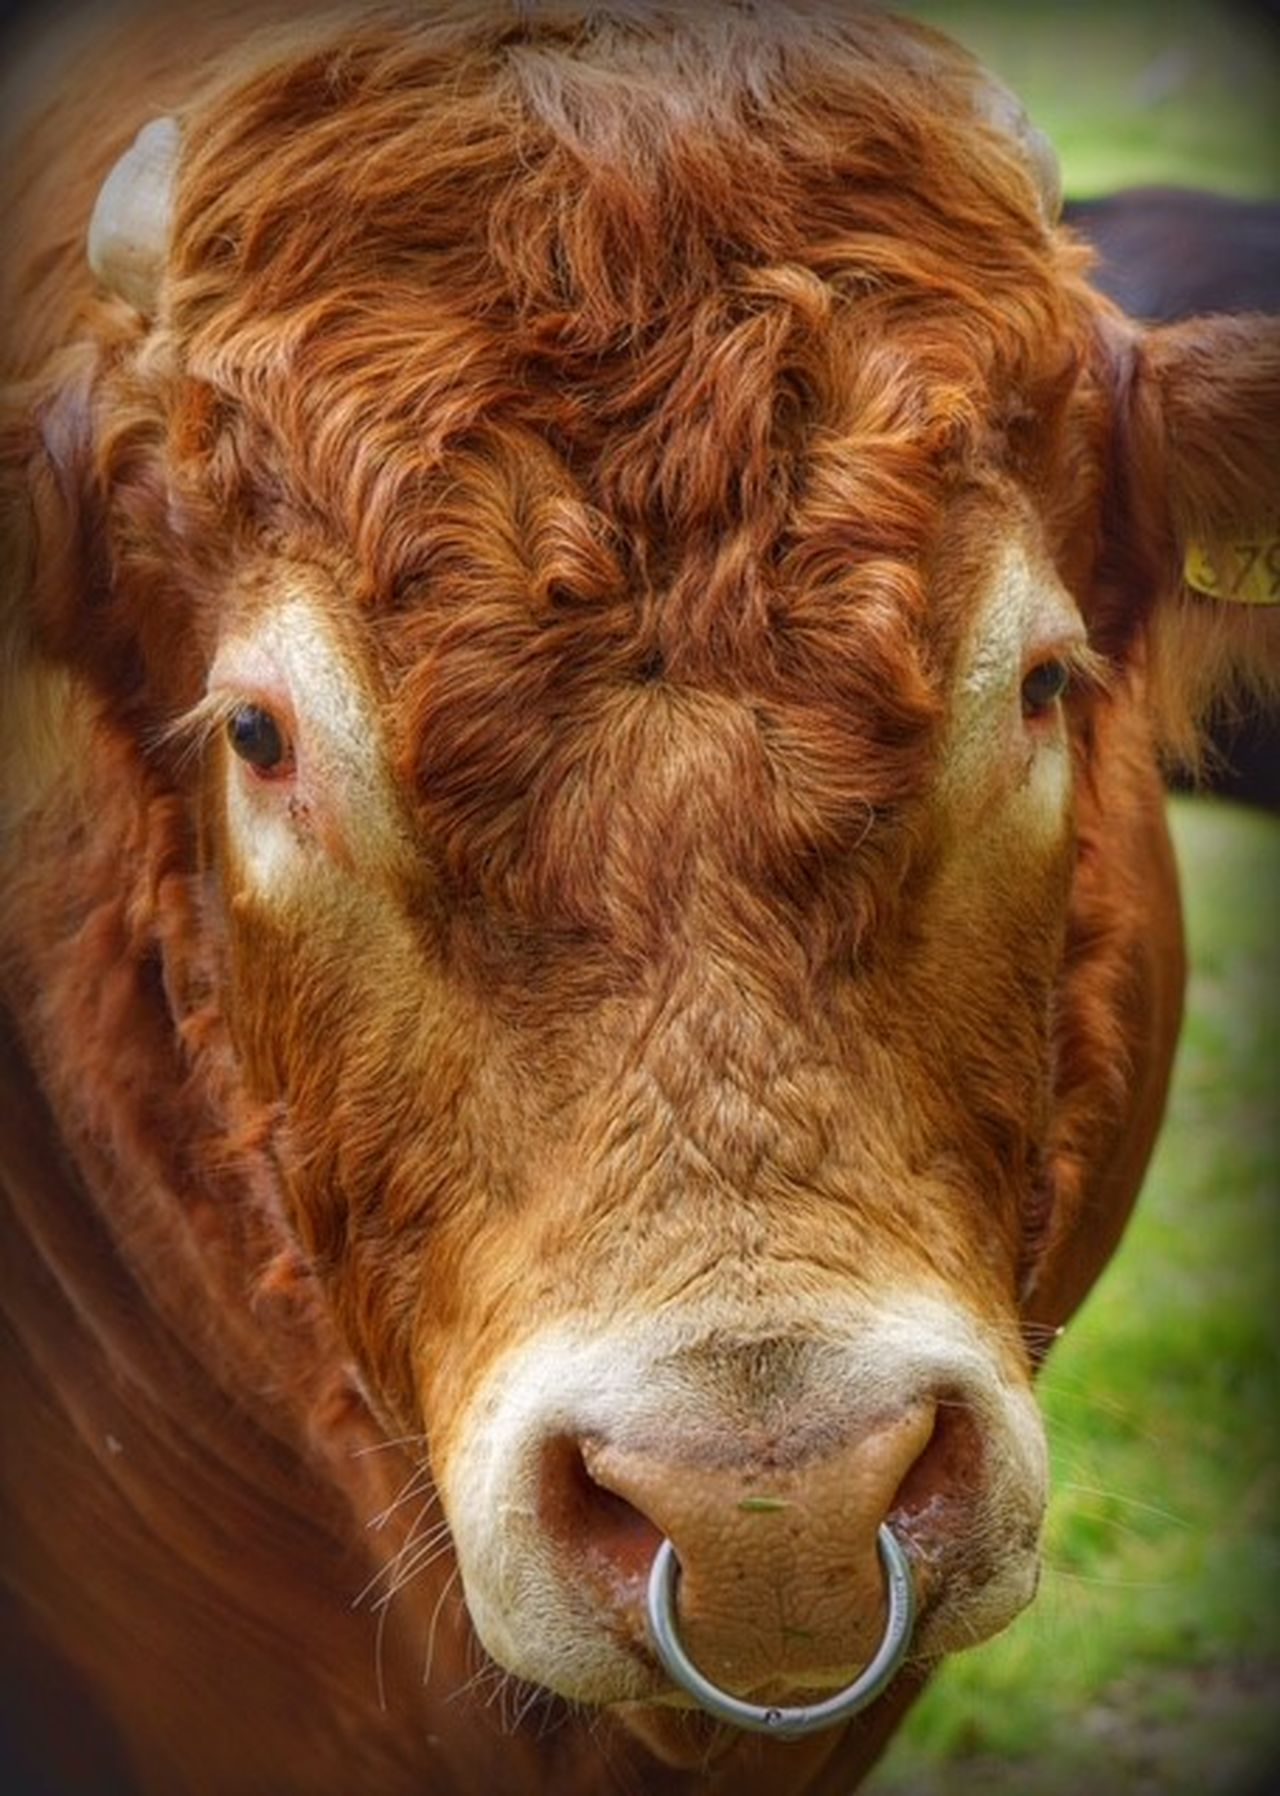 Animal Head  Animal Themes Brown Cattle Close-up Cow Day Domestic Animals Domestic Cattle Farm Animal Highland Cattle Livestock Mammal No People One Animal Outdoors